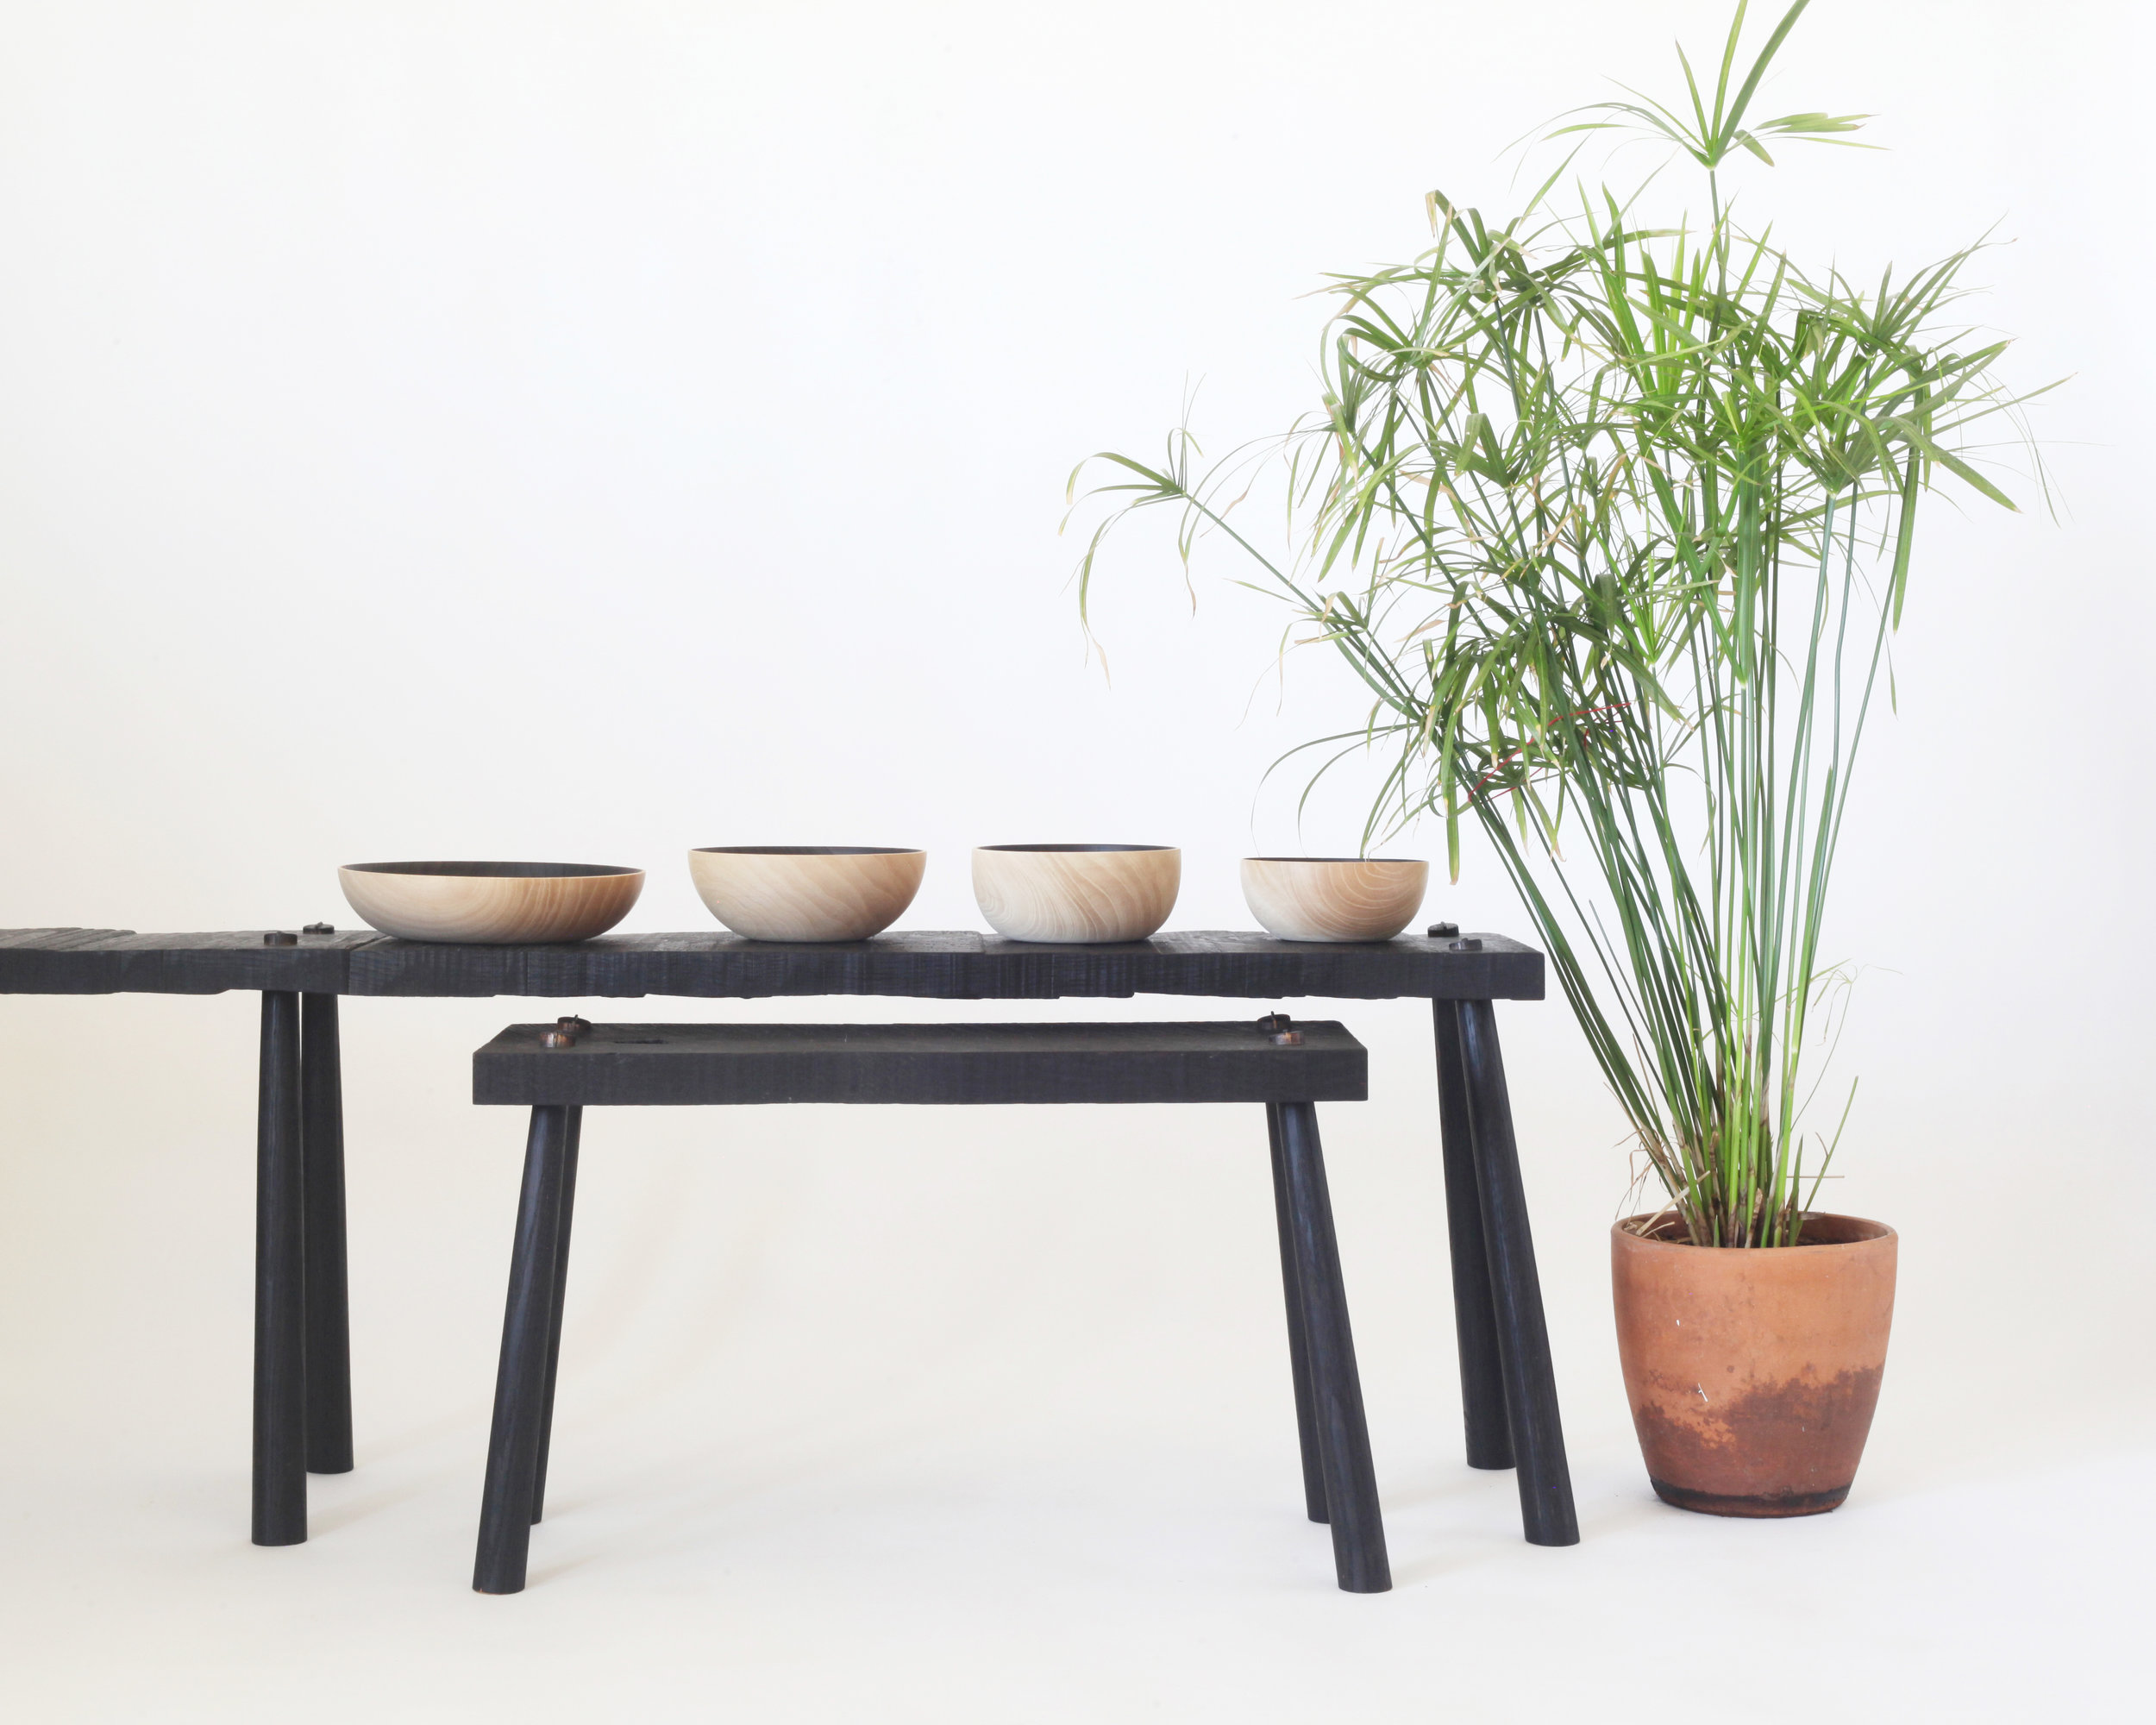 Roughhewn benches,  Burnout bowls